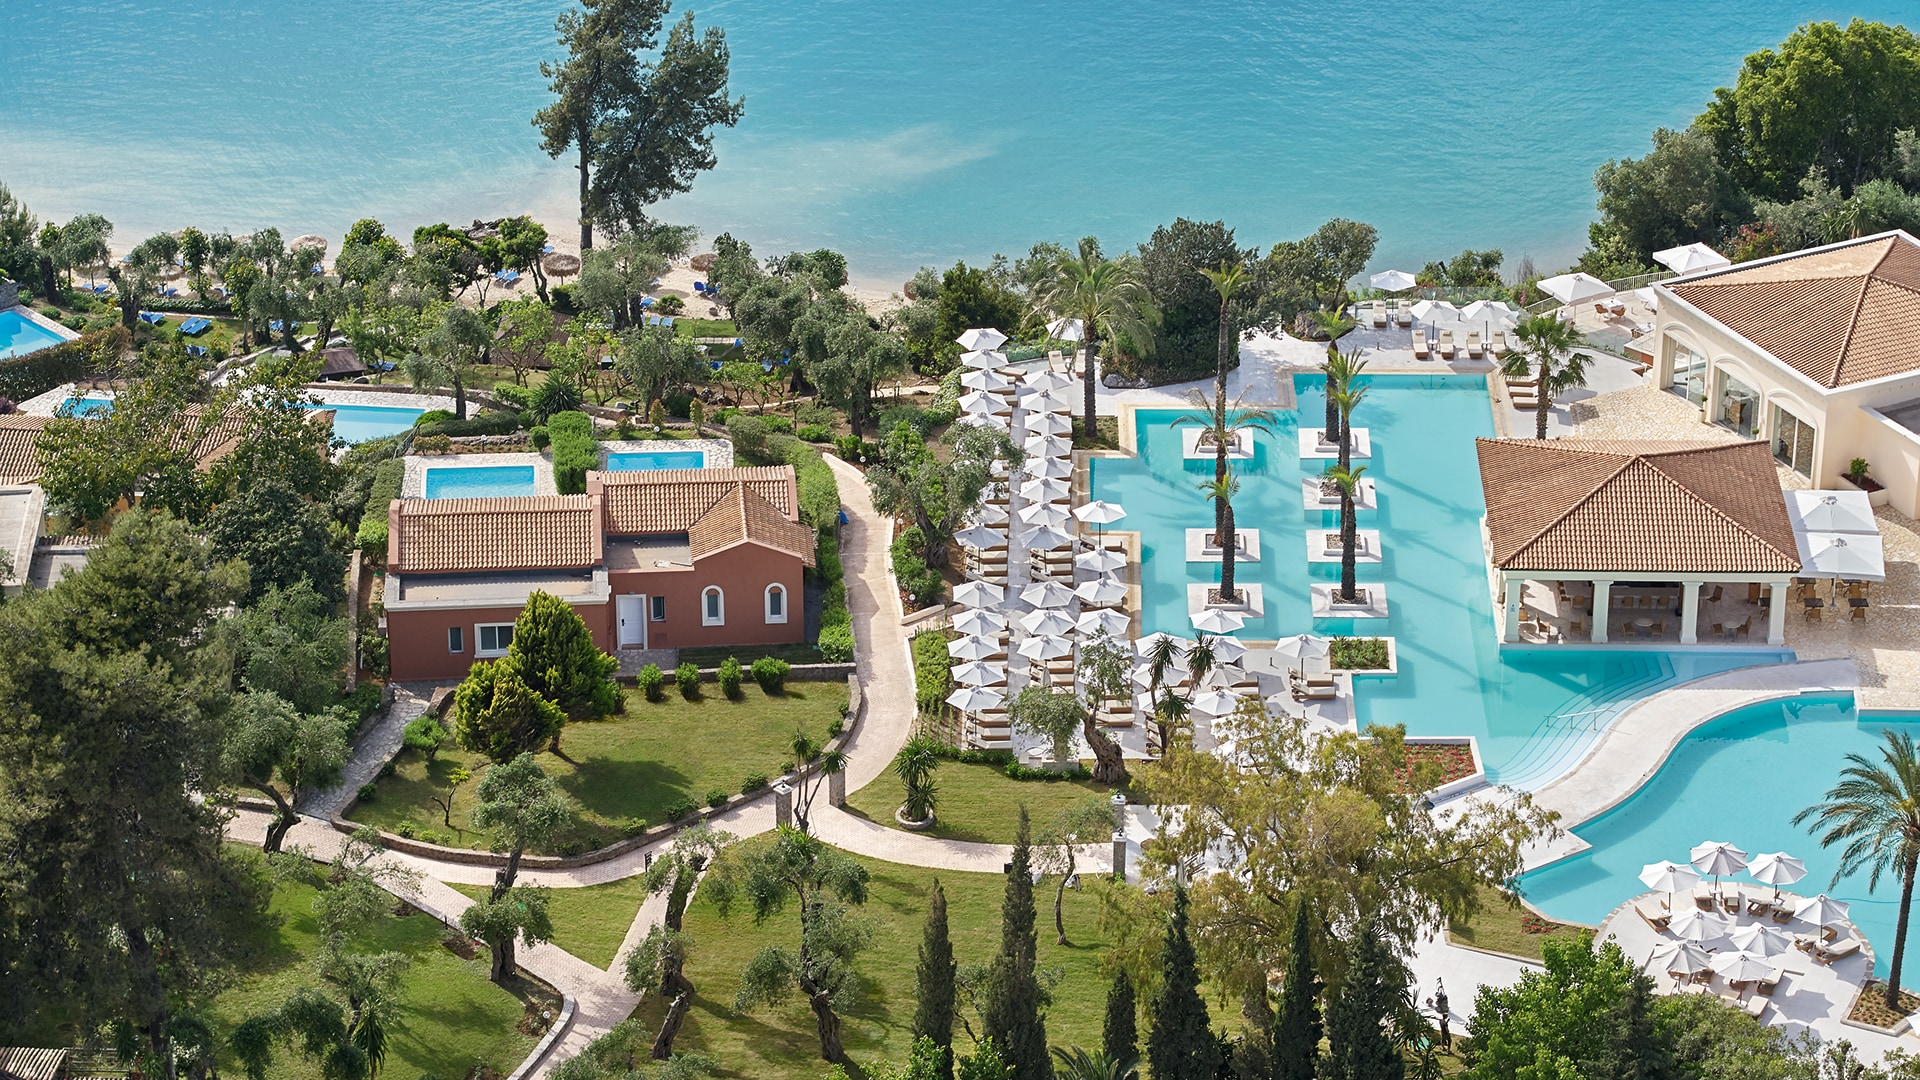 Luxury Resort Eva Palace in Corfu